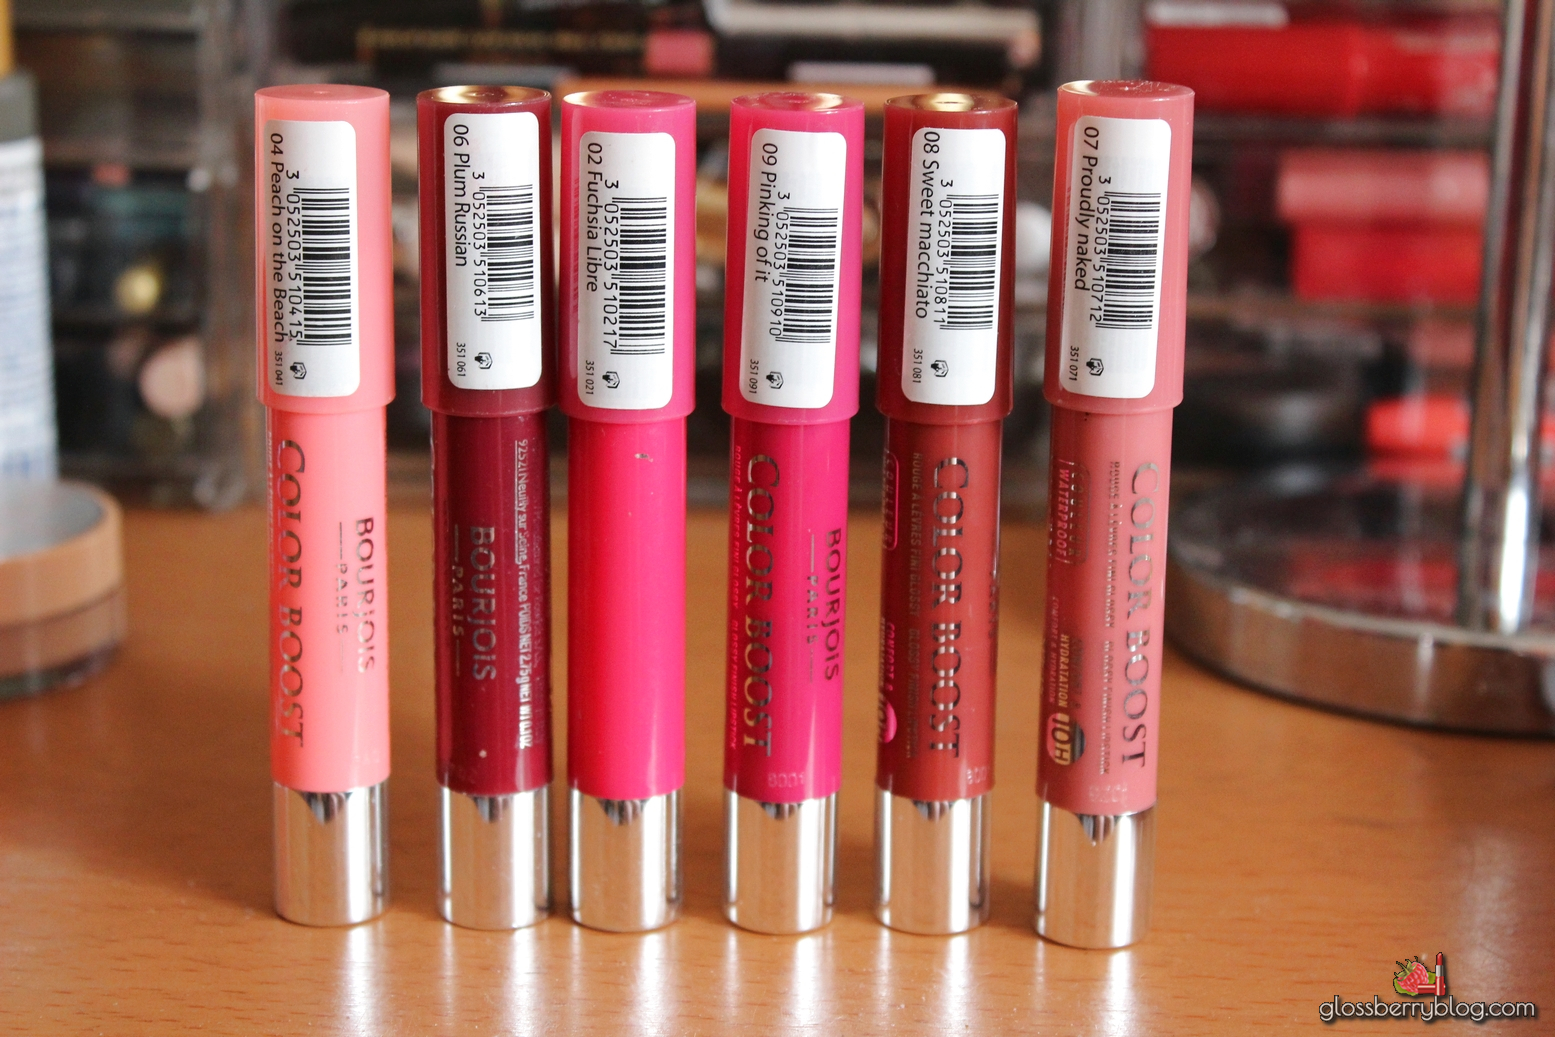 Bourjois Colour Boost Lip Crayon  - Proudly Naked, Sweet Machiato, Pinking Of It 09 08 07 review swatches comparison fuchsia libre new colors stain glossy chubby swatch recommendation המלצה צ'אבי בורז'ואה בורג'ואה שפתון בלוג איפור וטיפוח Glossberry blog גלוסברי peach on the beach plum russian